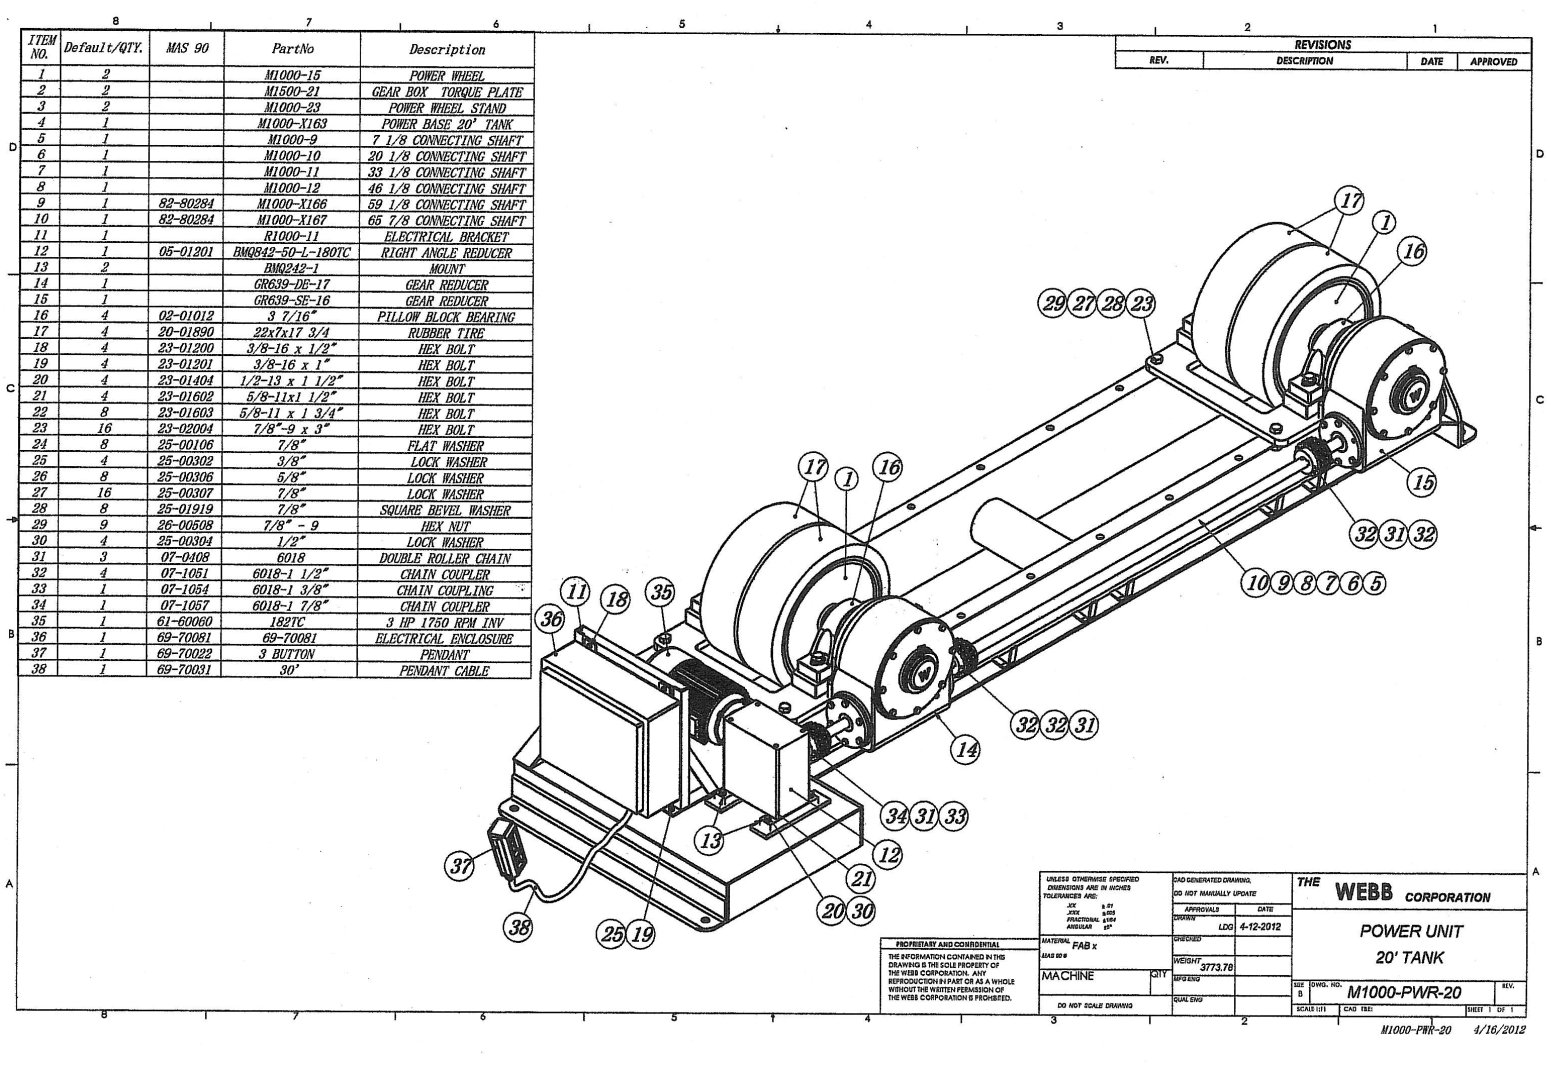 Webb Corporation Your Headquarters For Turning Rolls And